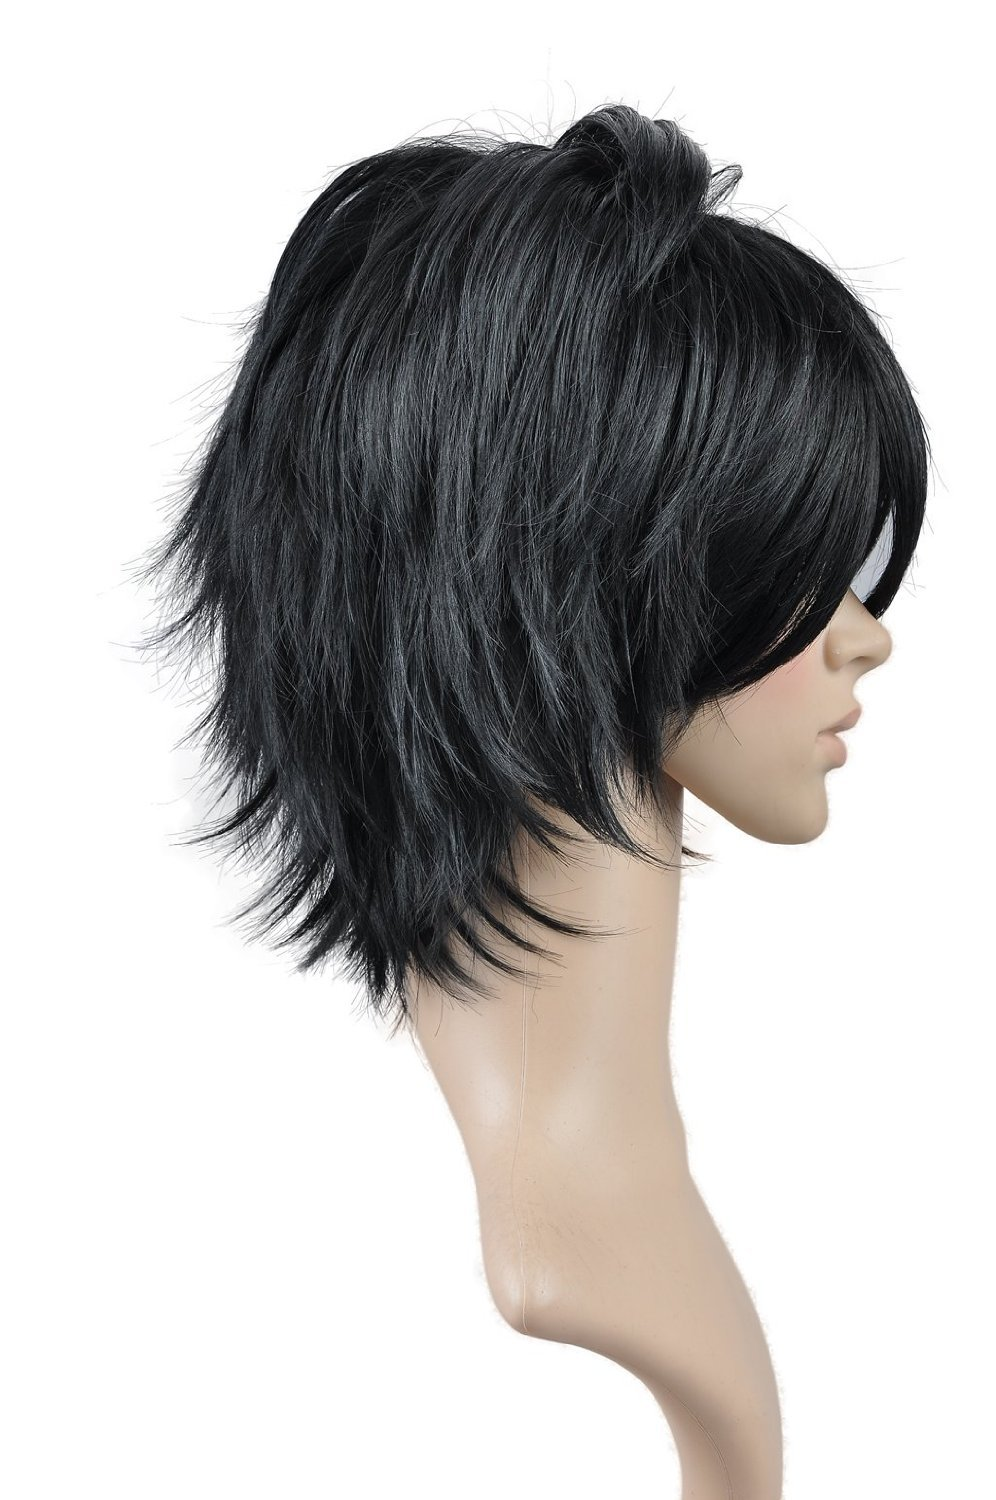 Death Note L Lawliet Anime  L Death Note Cosplay Wig